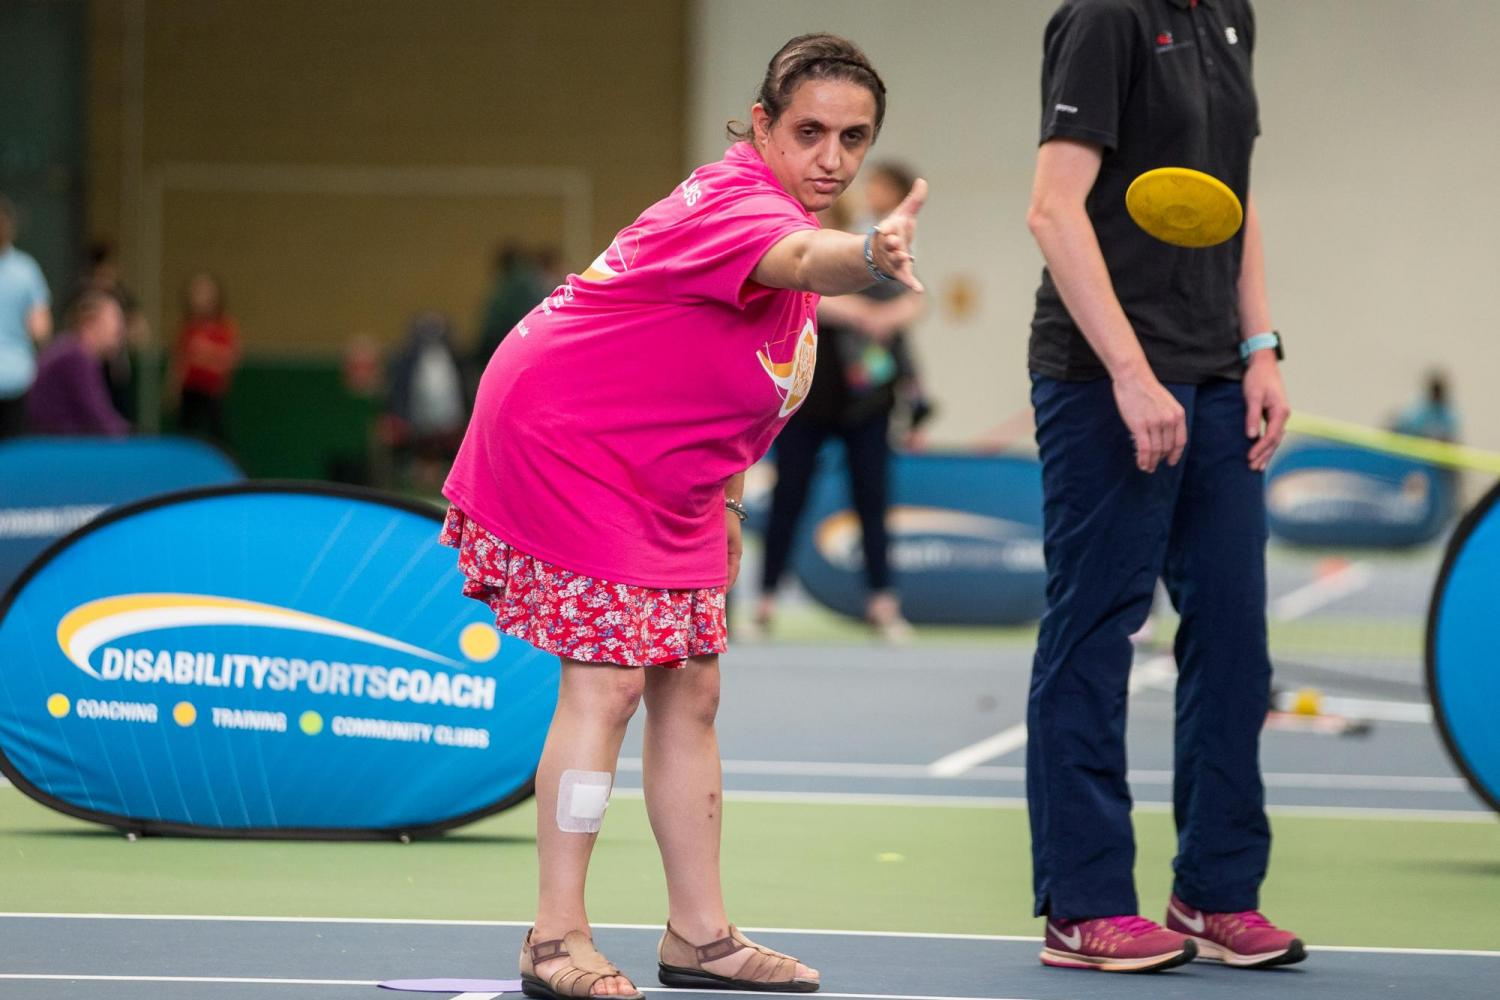 Disability Sports Coach - DSC Summer Festival 2017